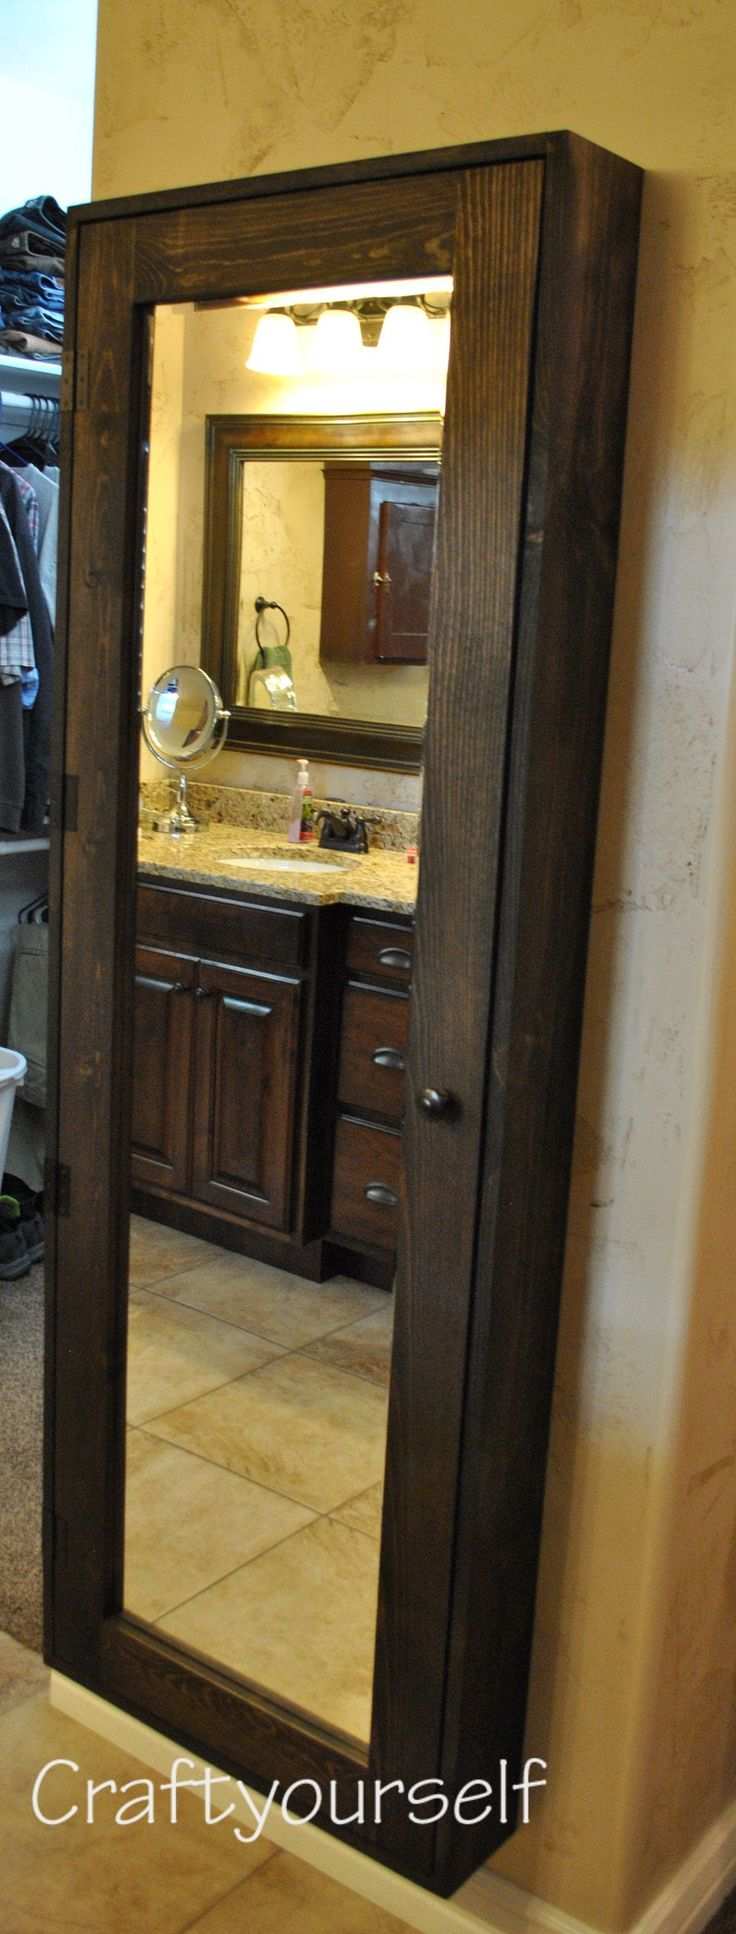 Diy bathroom storage cabinet - Diy Bathroom Cabinet With Mirror